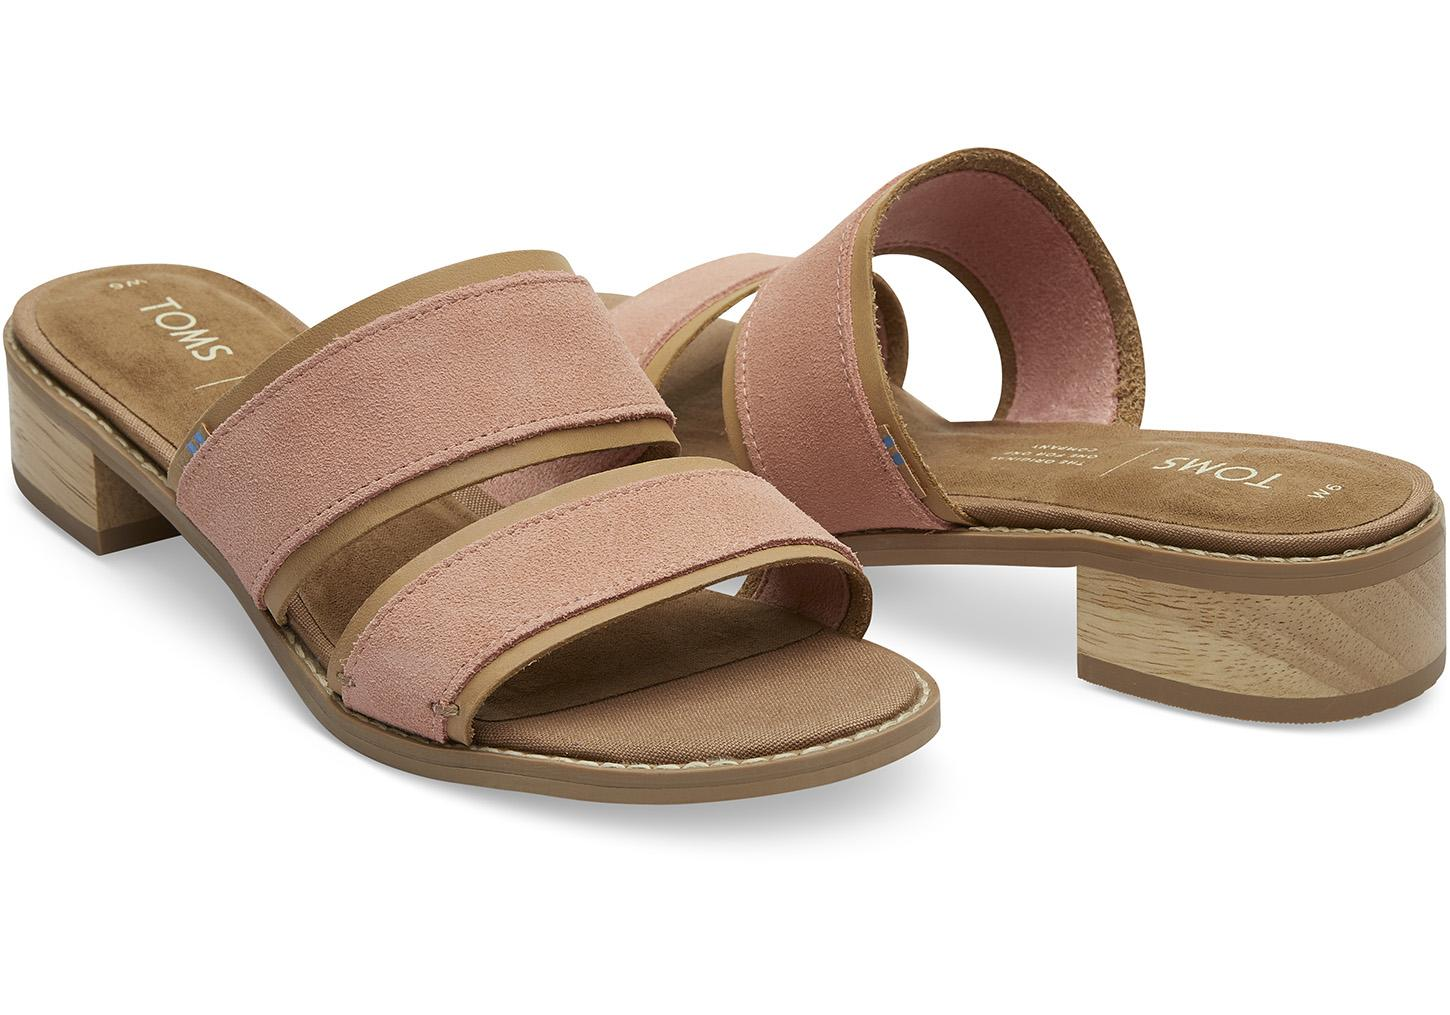 6c2cc7e07bf1 Lyst - TOMS Coral Pink Suede Mariposa Women s Sandals in Pink